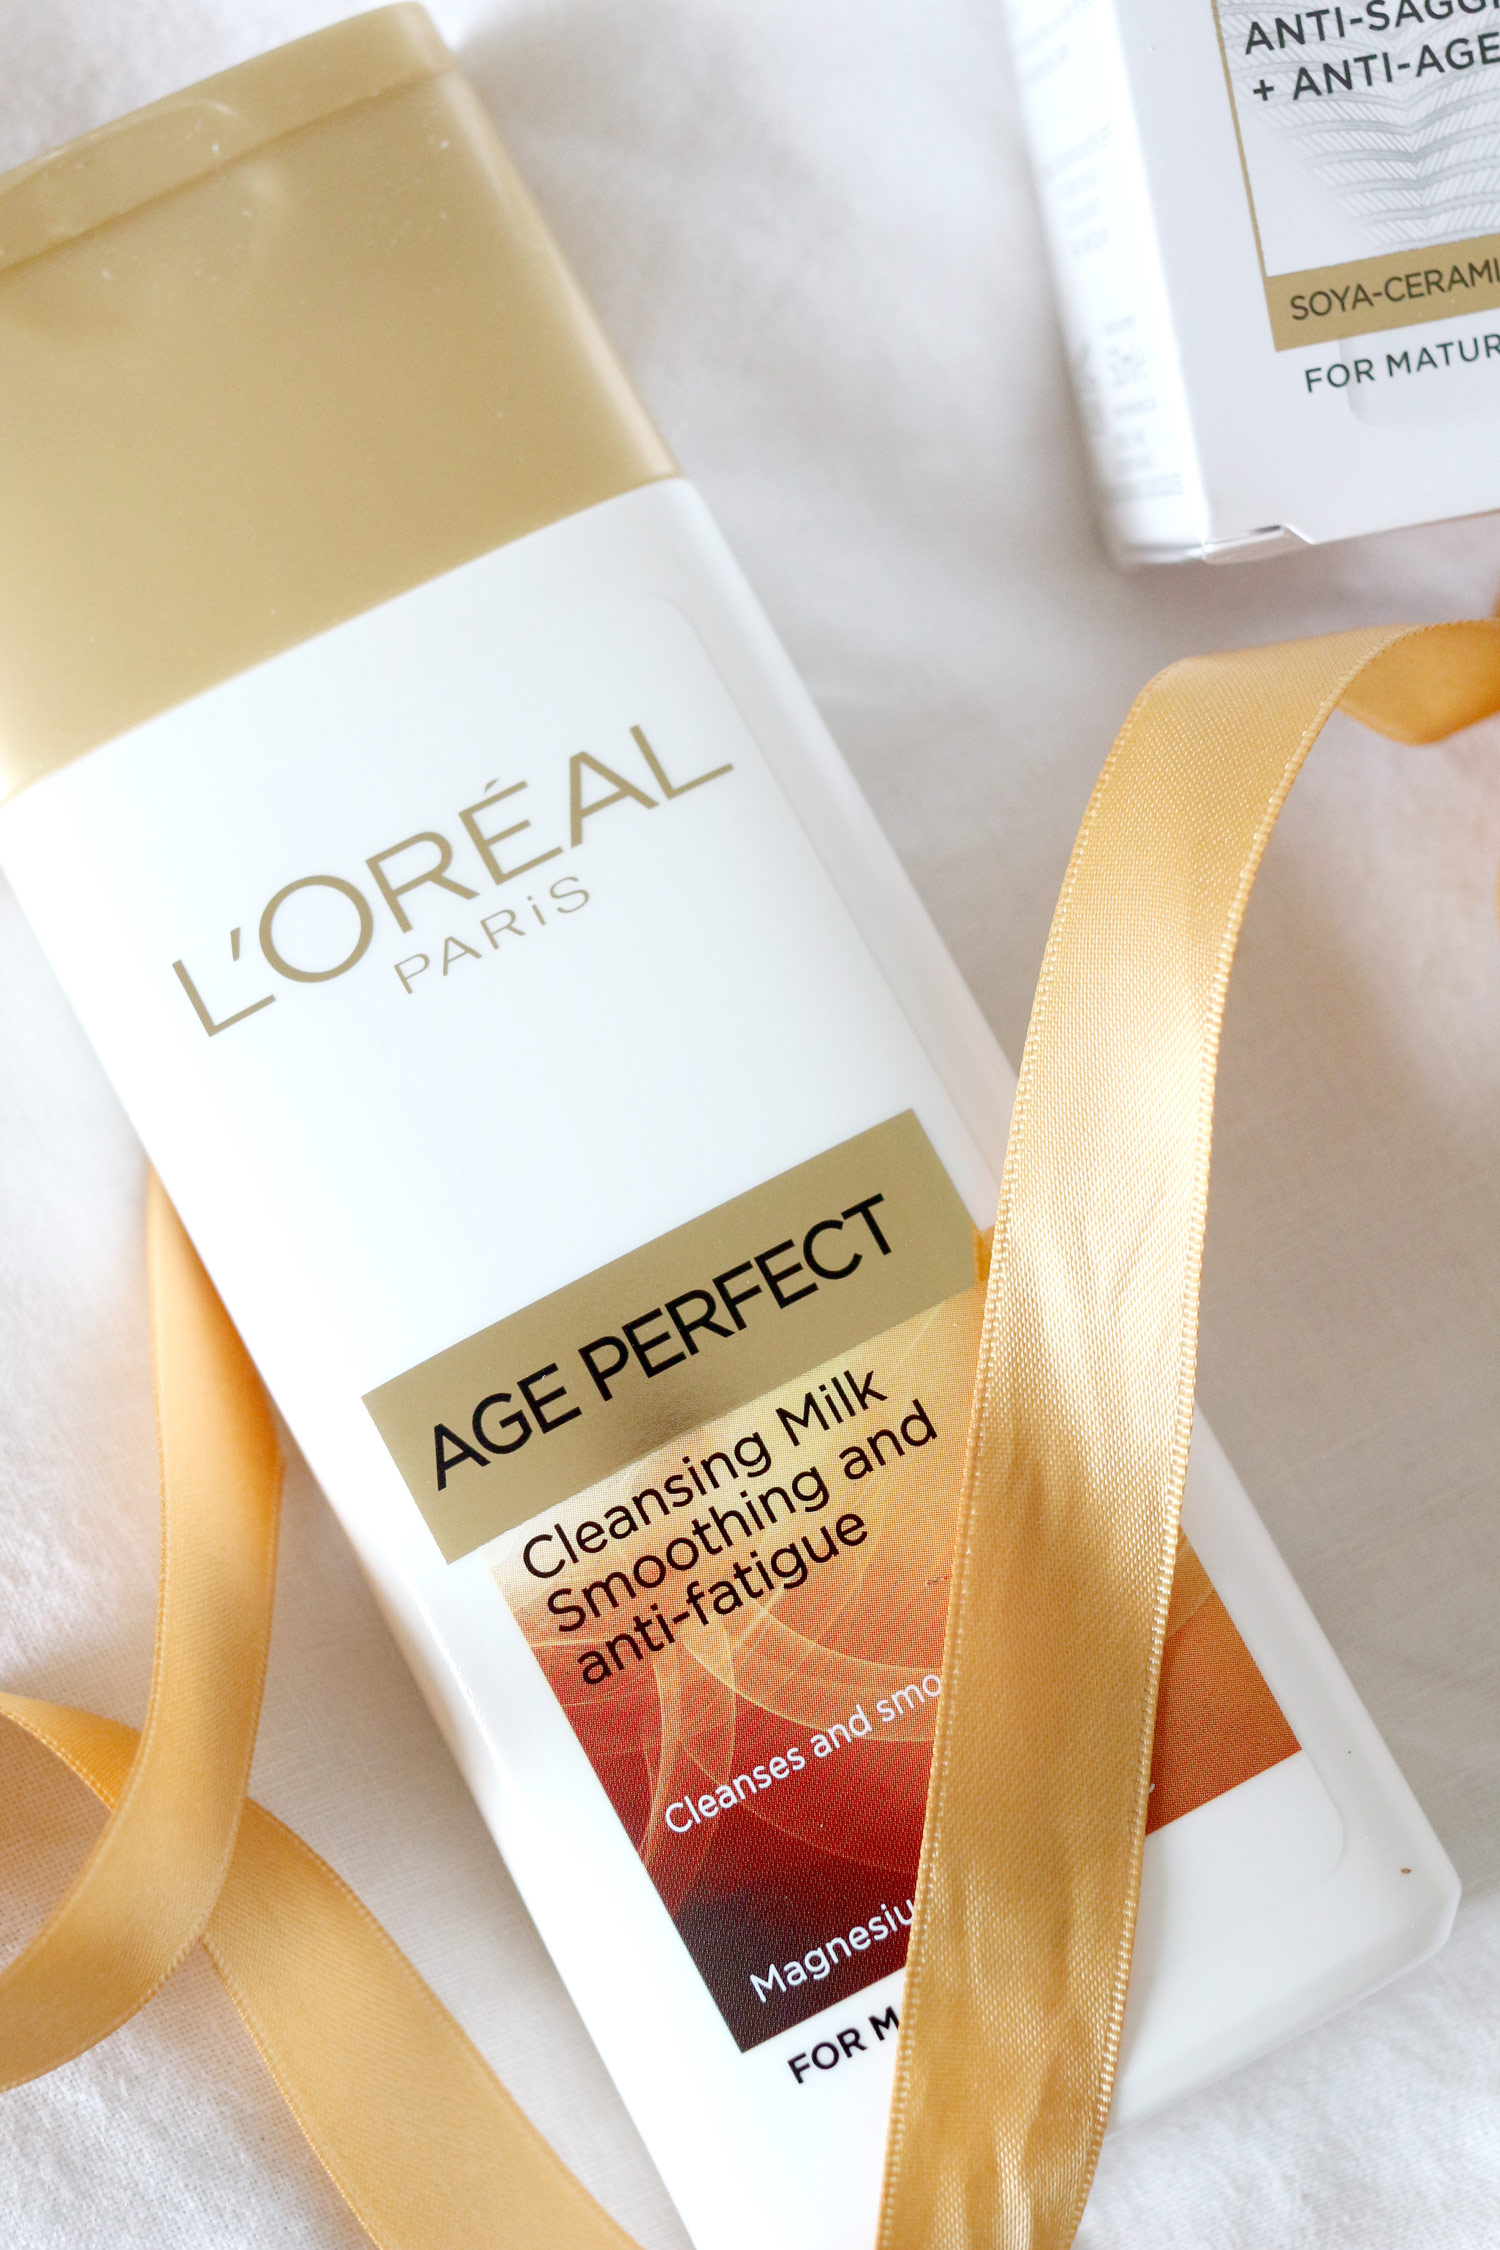 loreal-age-perfect-mothers-day-skincare-gift-set-4